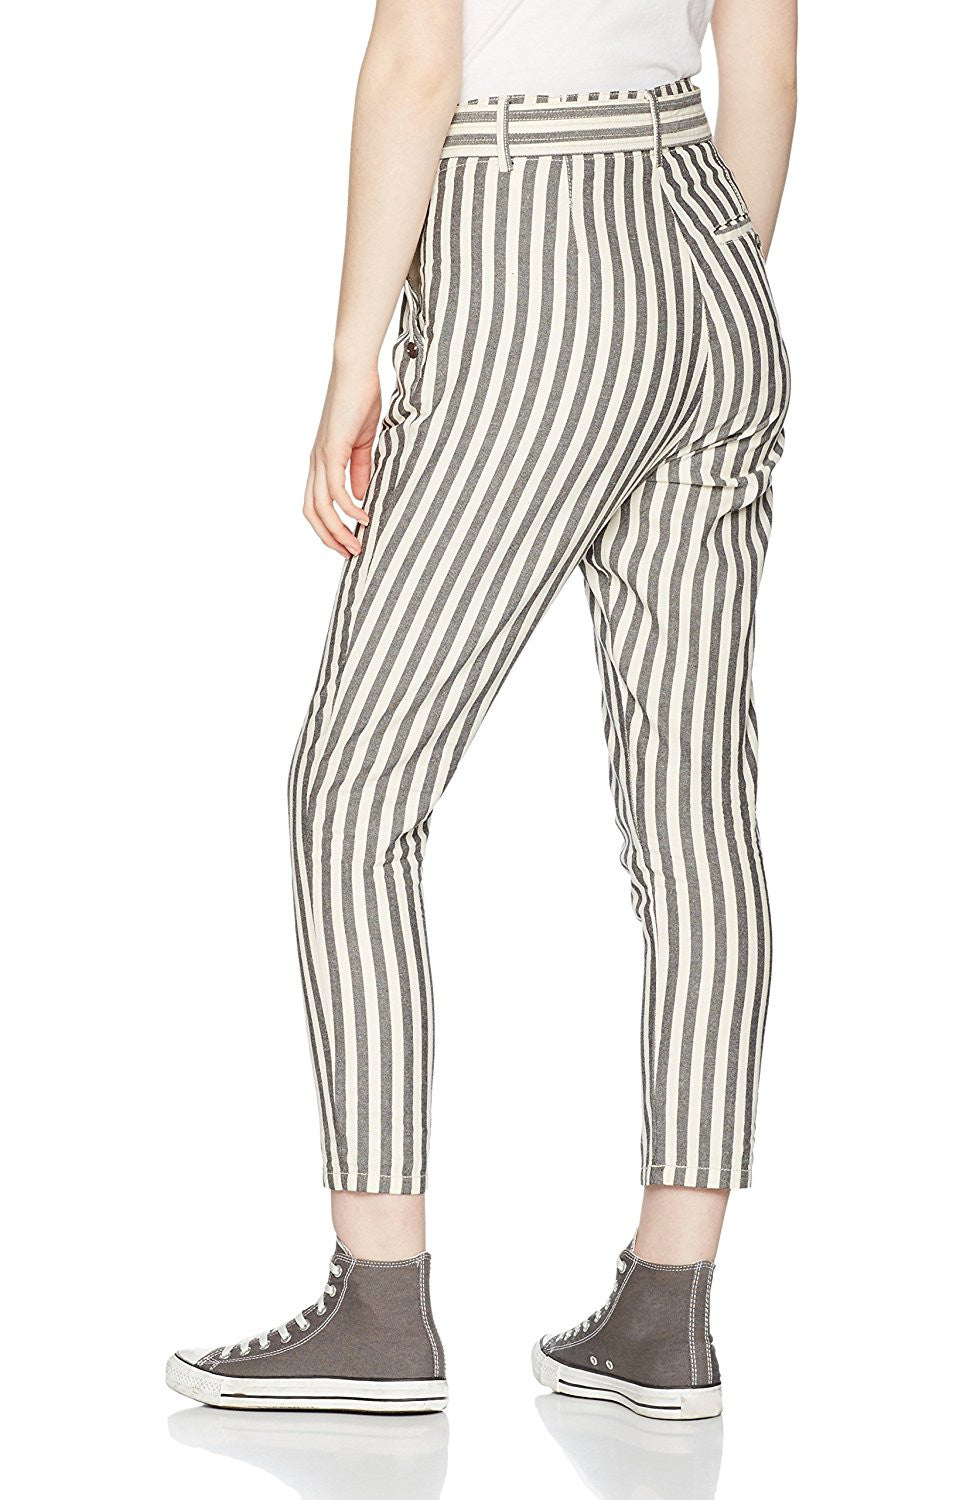 Mabil Striped Trousers, Numph - Gingerly Witty